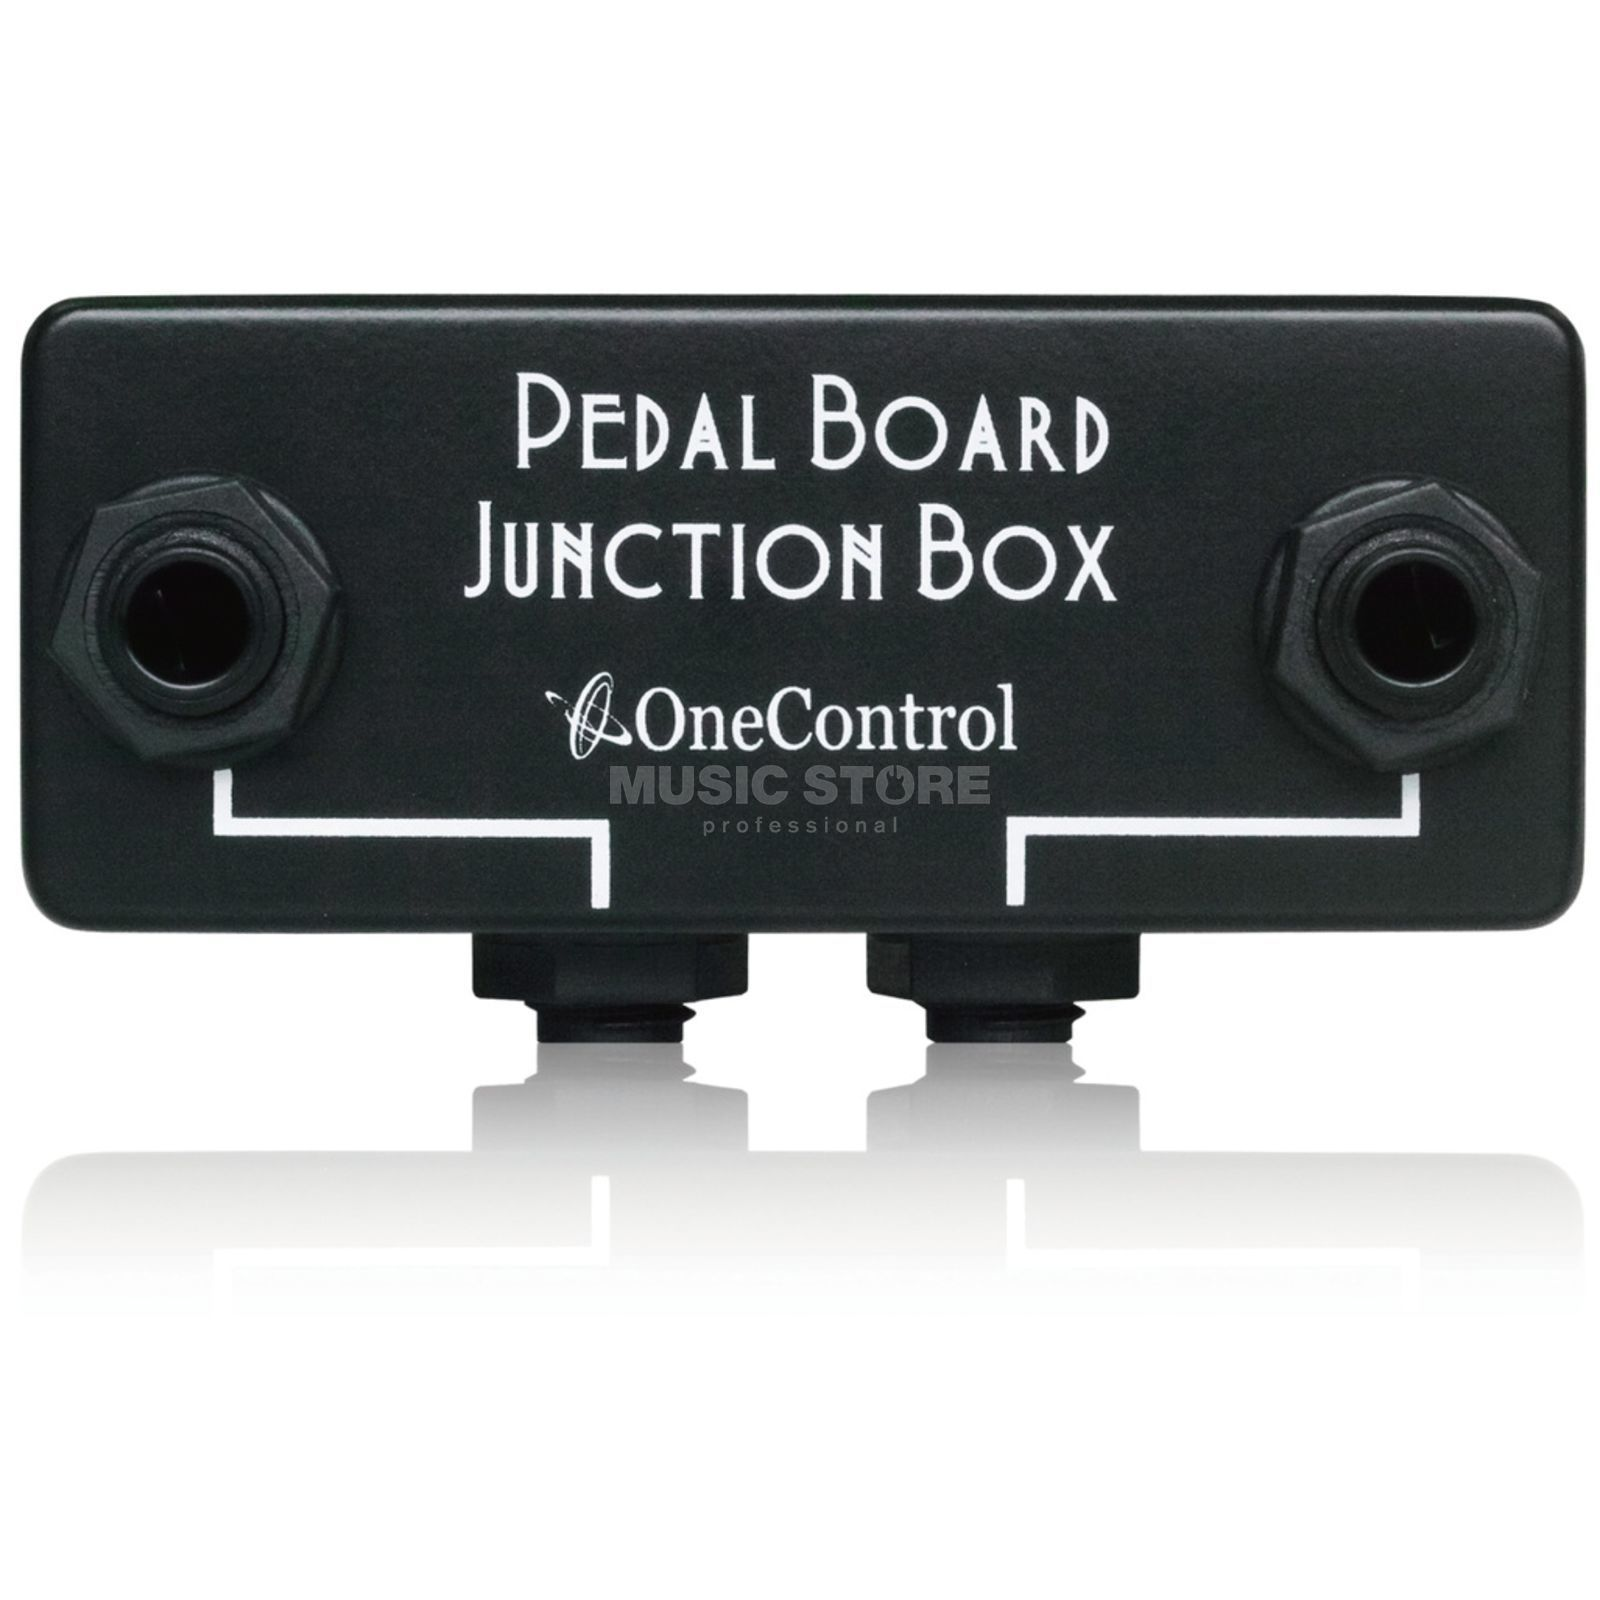 One Control Junction Box Produktbild